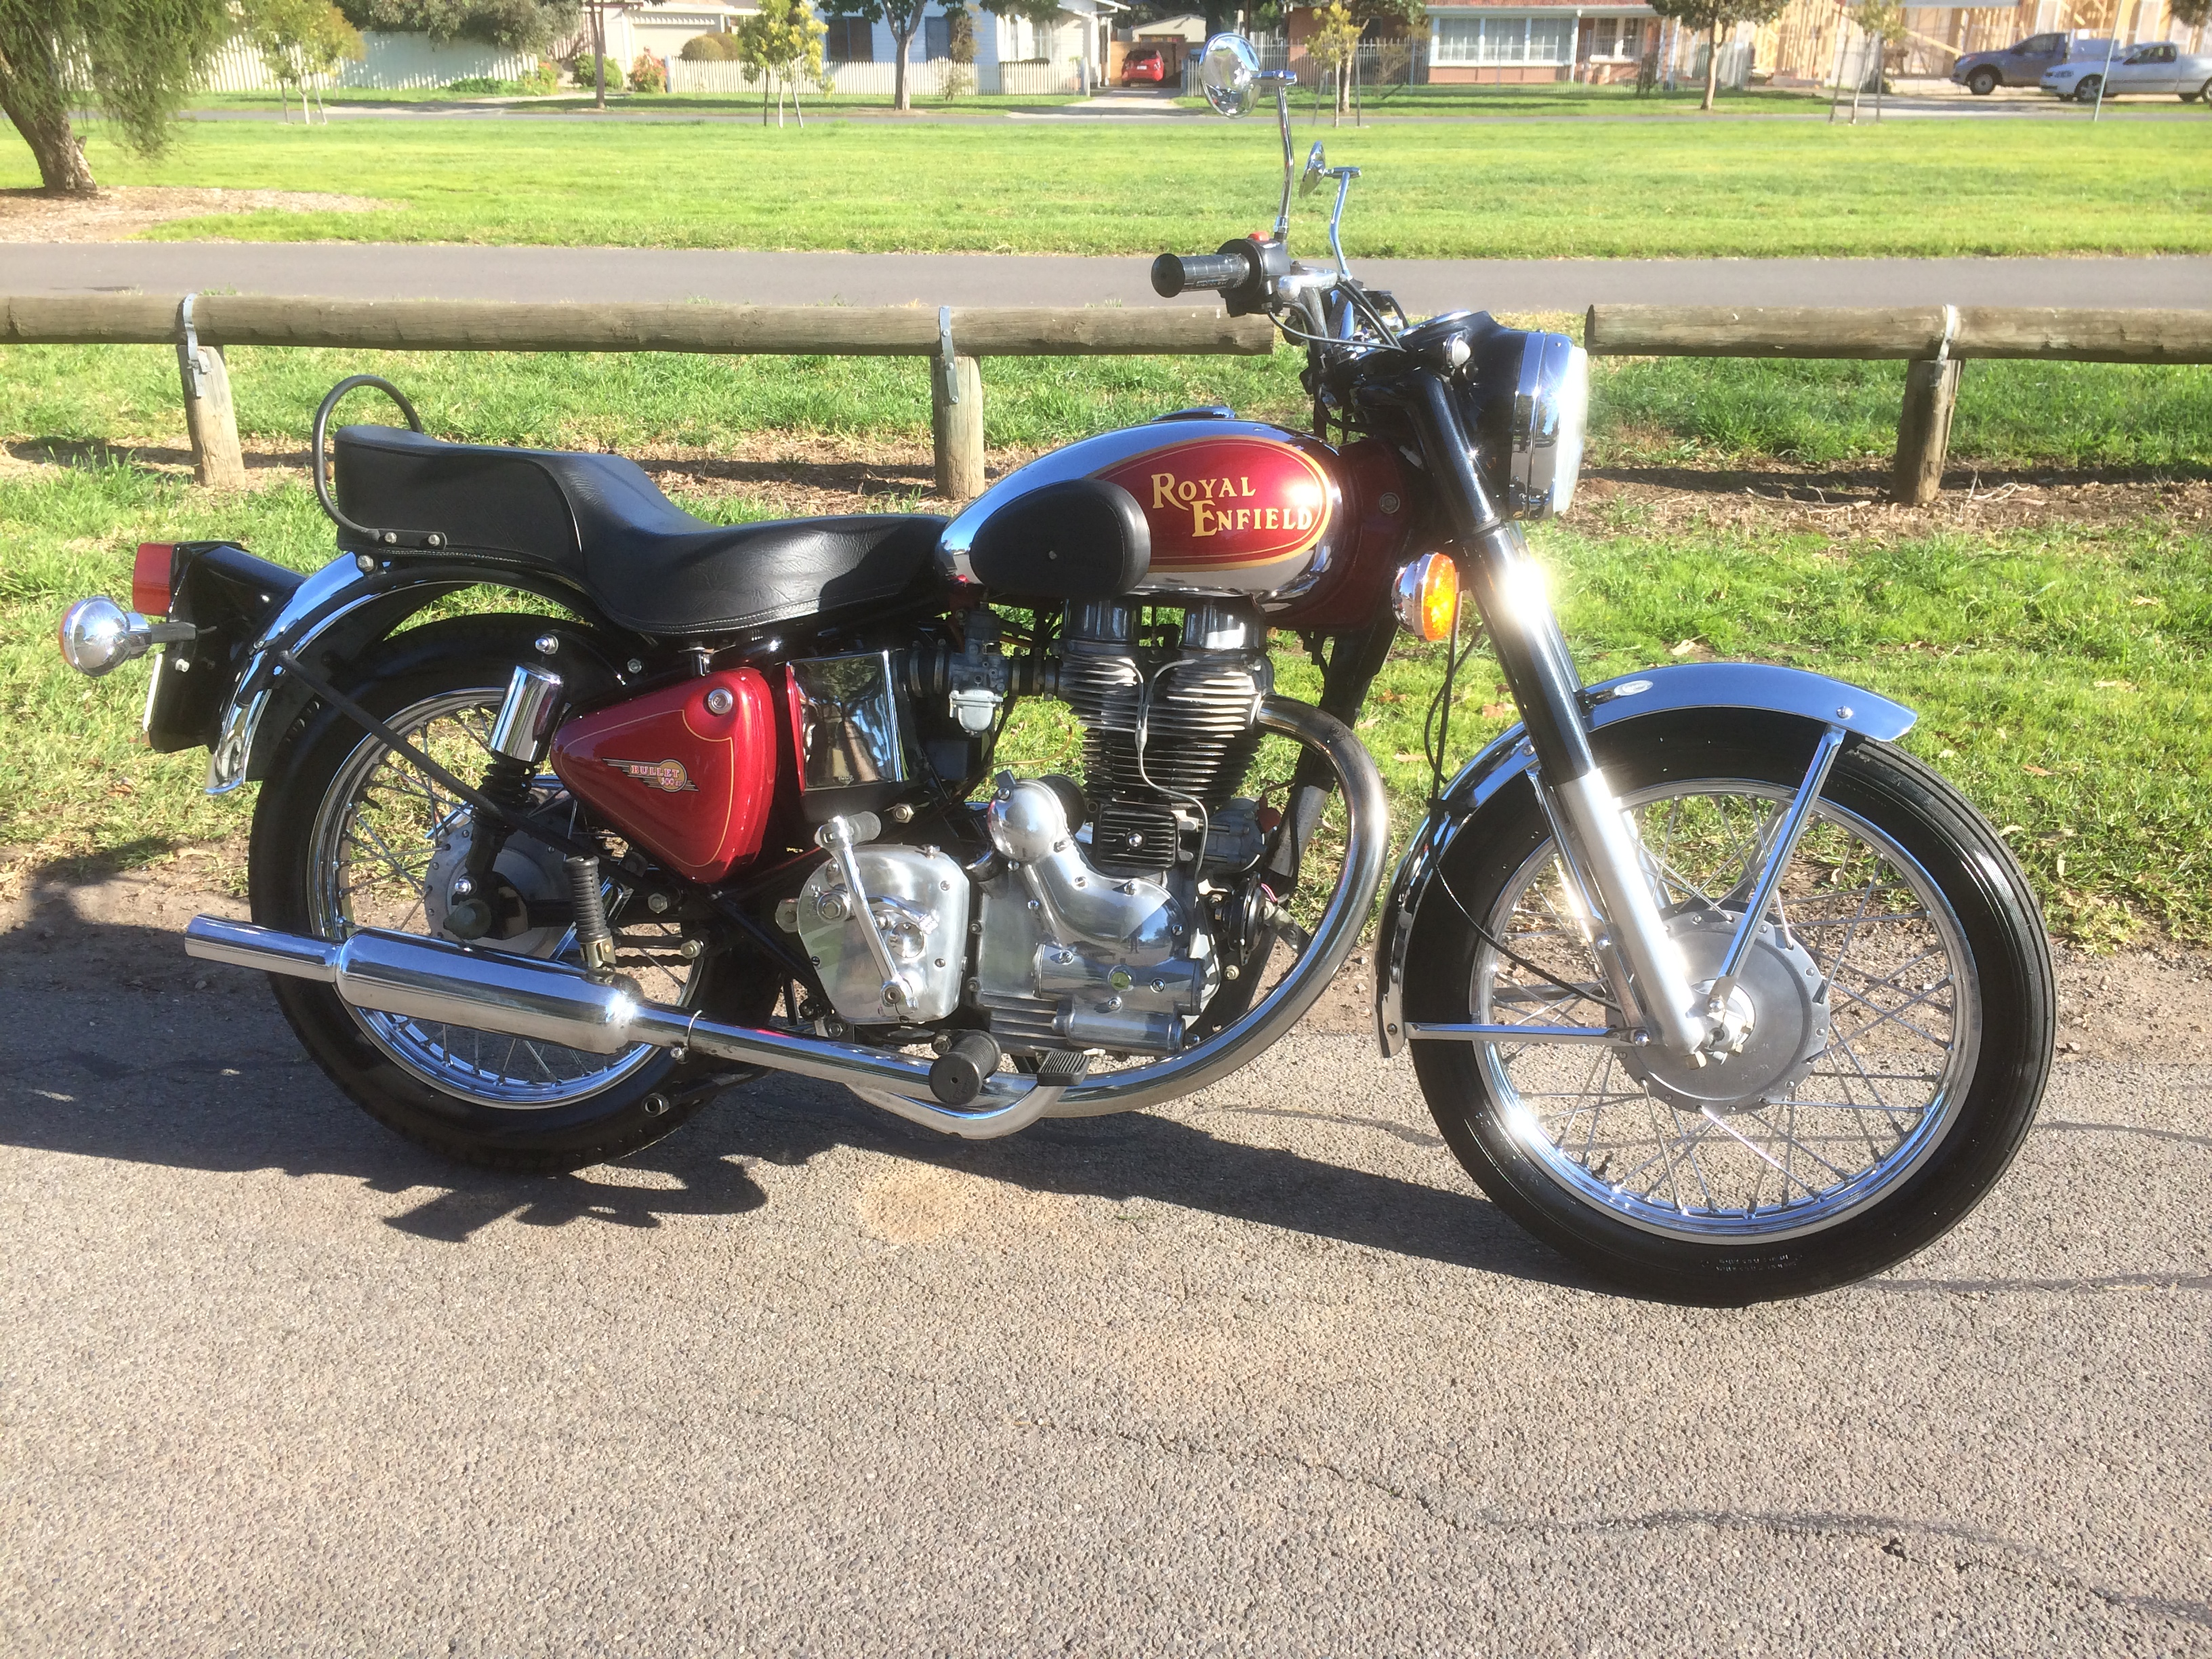 Royal Enfield Bullet 500 Trial Trail 2003 images #123208